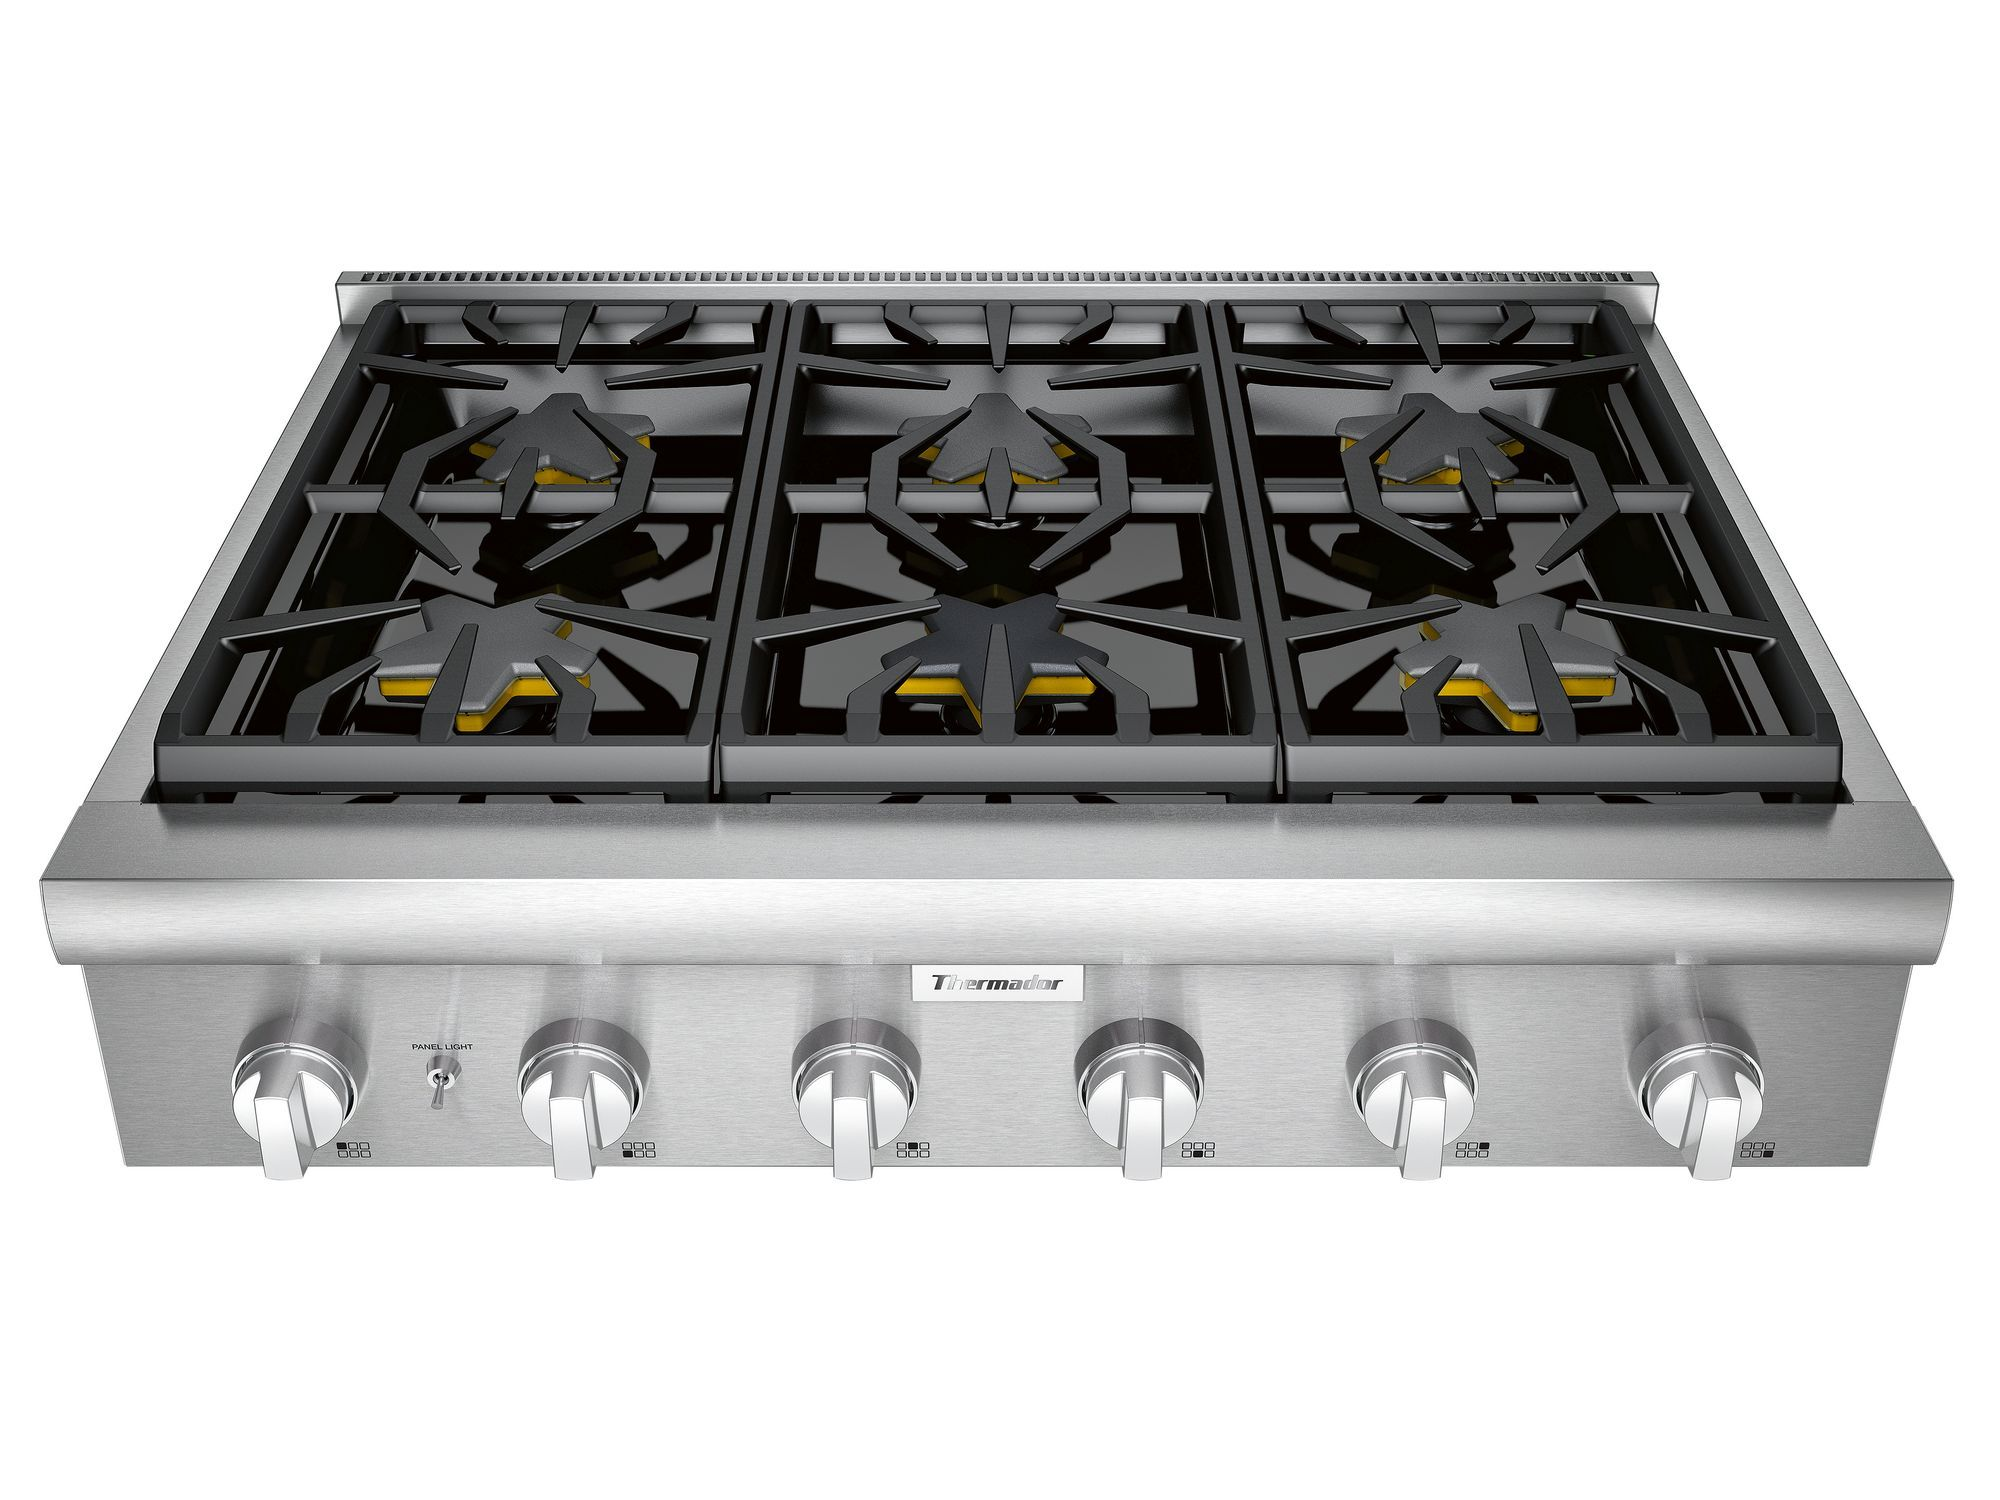 36 Professional Series Rangetop Pcg366w Pcg366w Thermador Thermador Range Top Kitchen Remodel Small